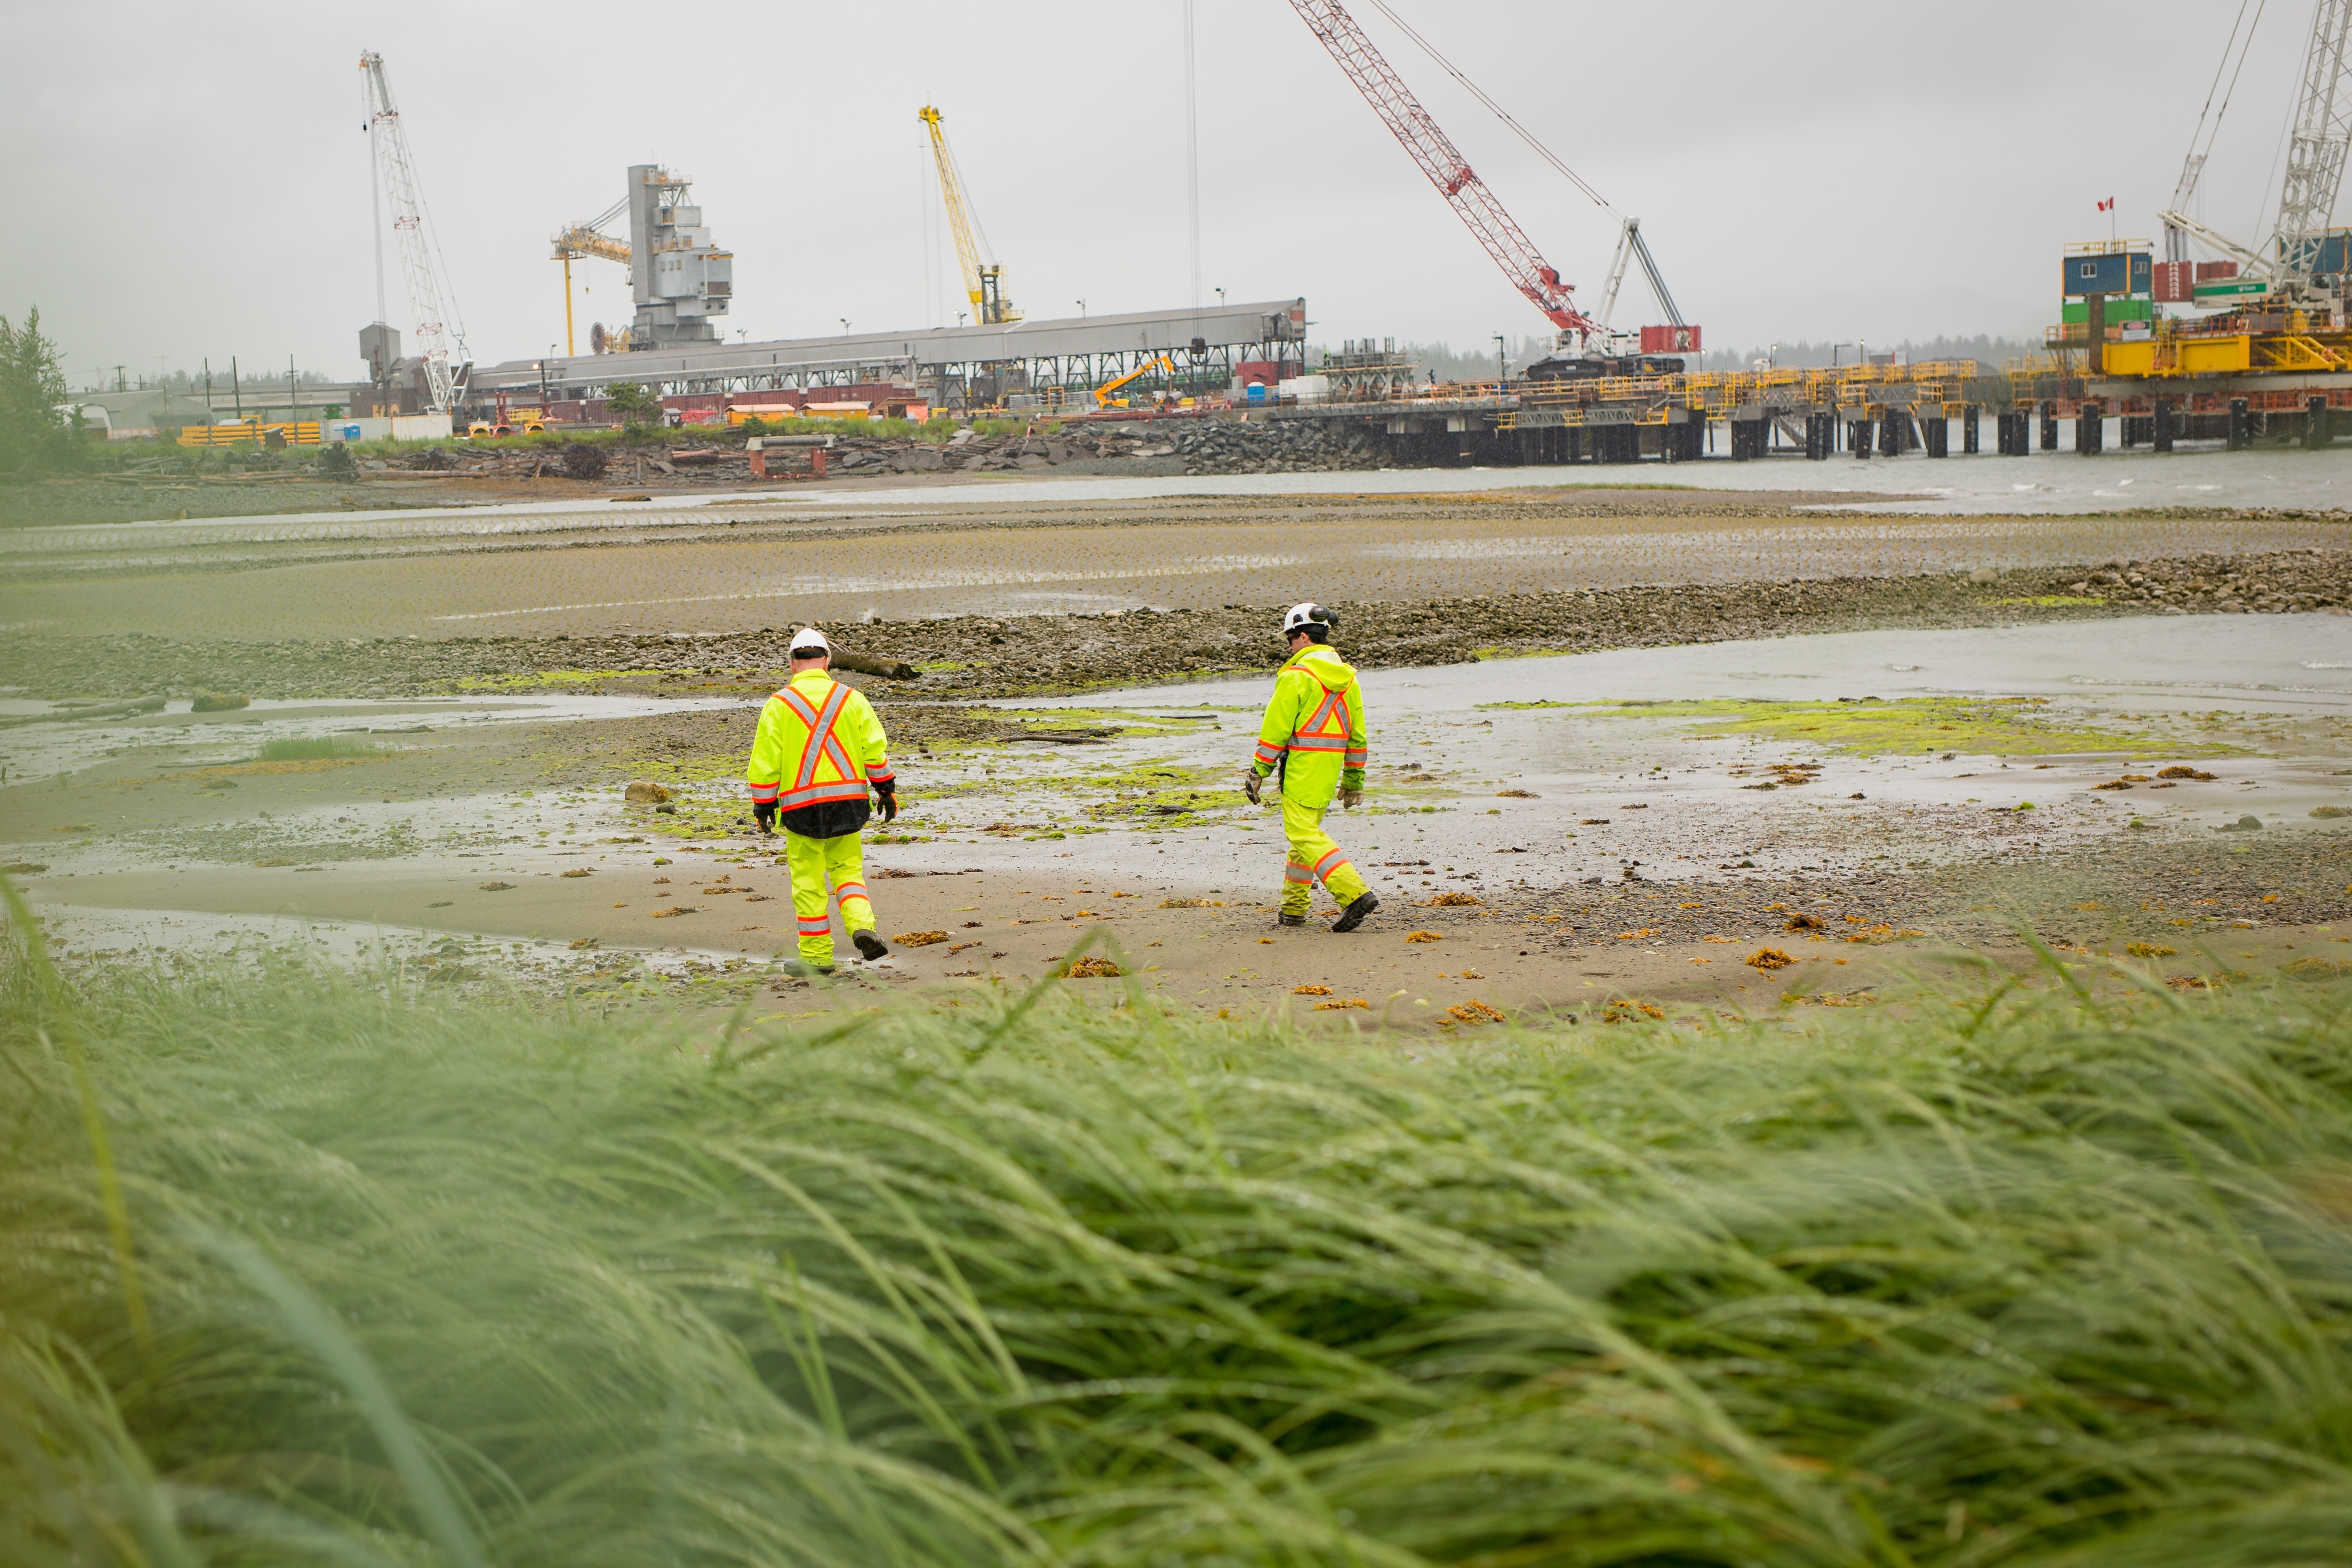 Physically distant workers walking at a beach